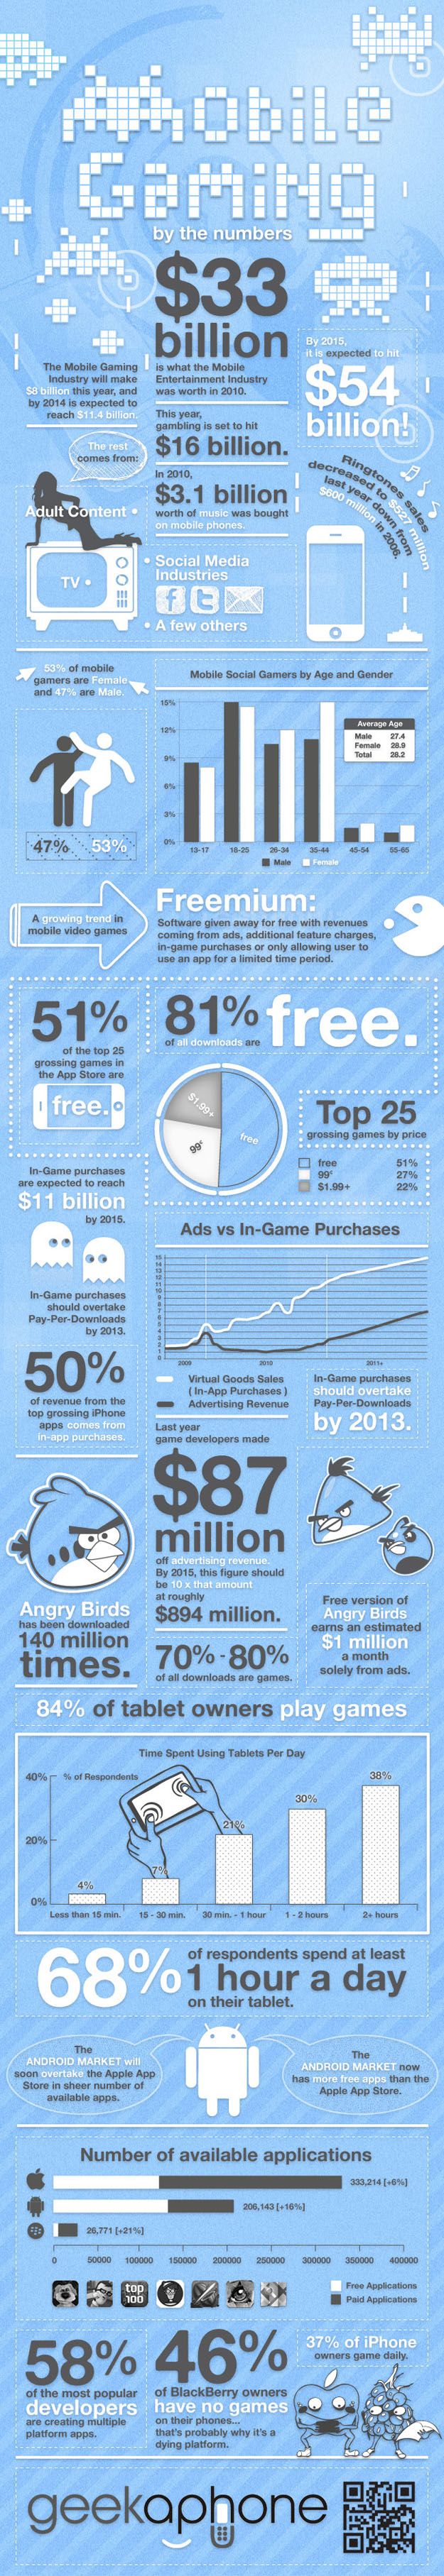 mobile gaming infographic stats